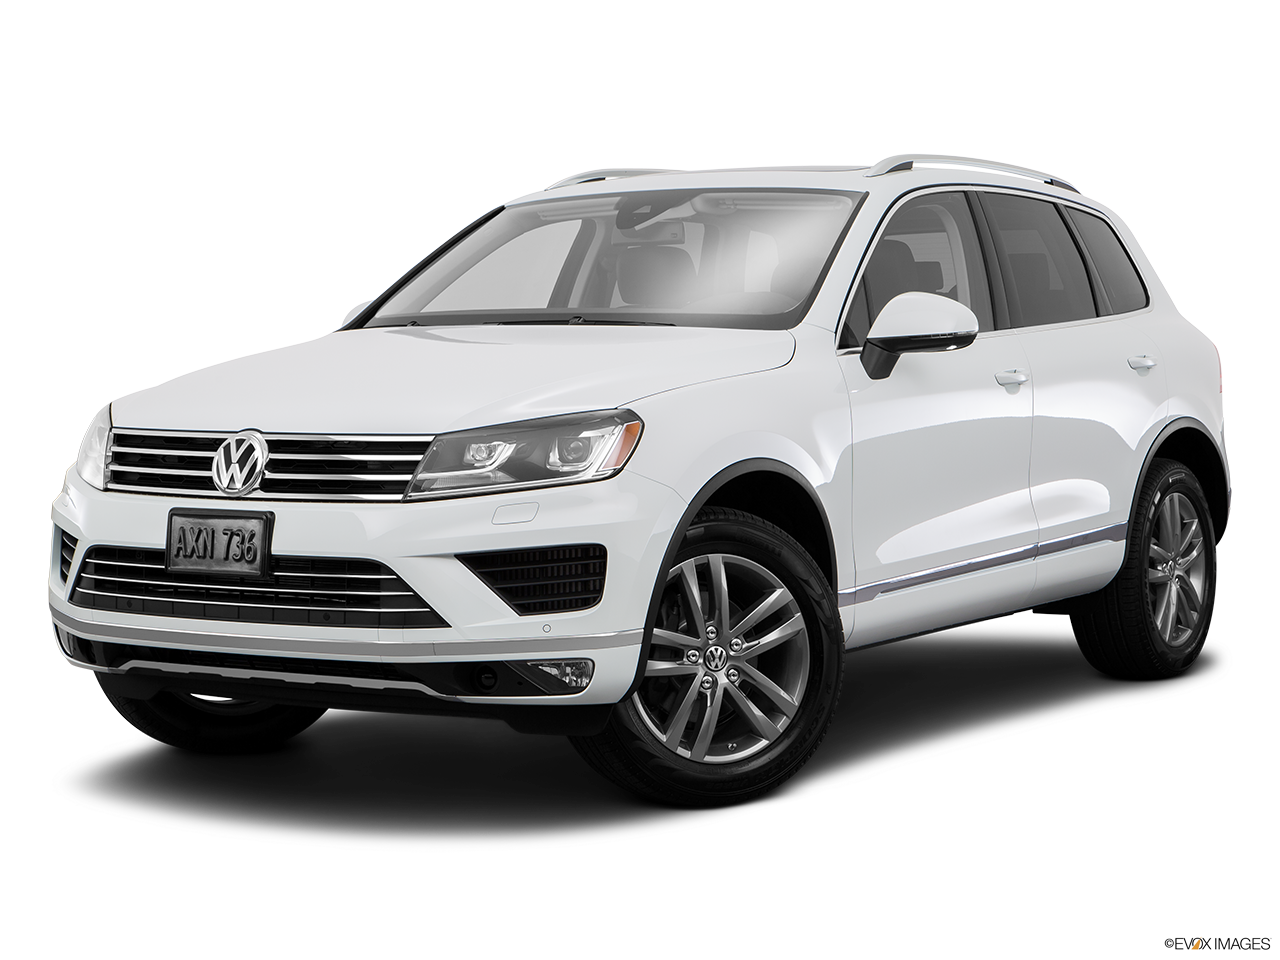 Test Drive A 2017 Volkswagen Touareg at Moss Bros Volkswagen of Moreno Valley in Moreno Valley